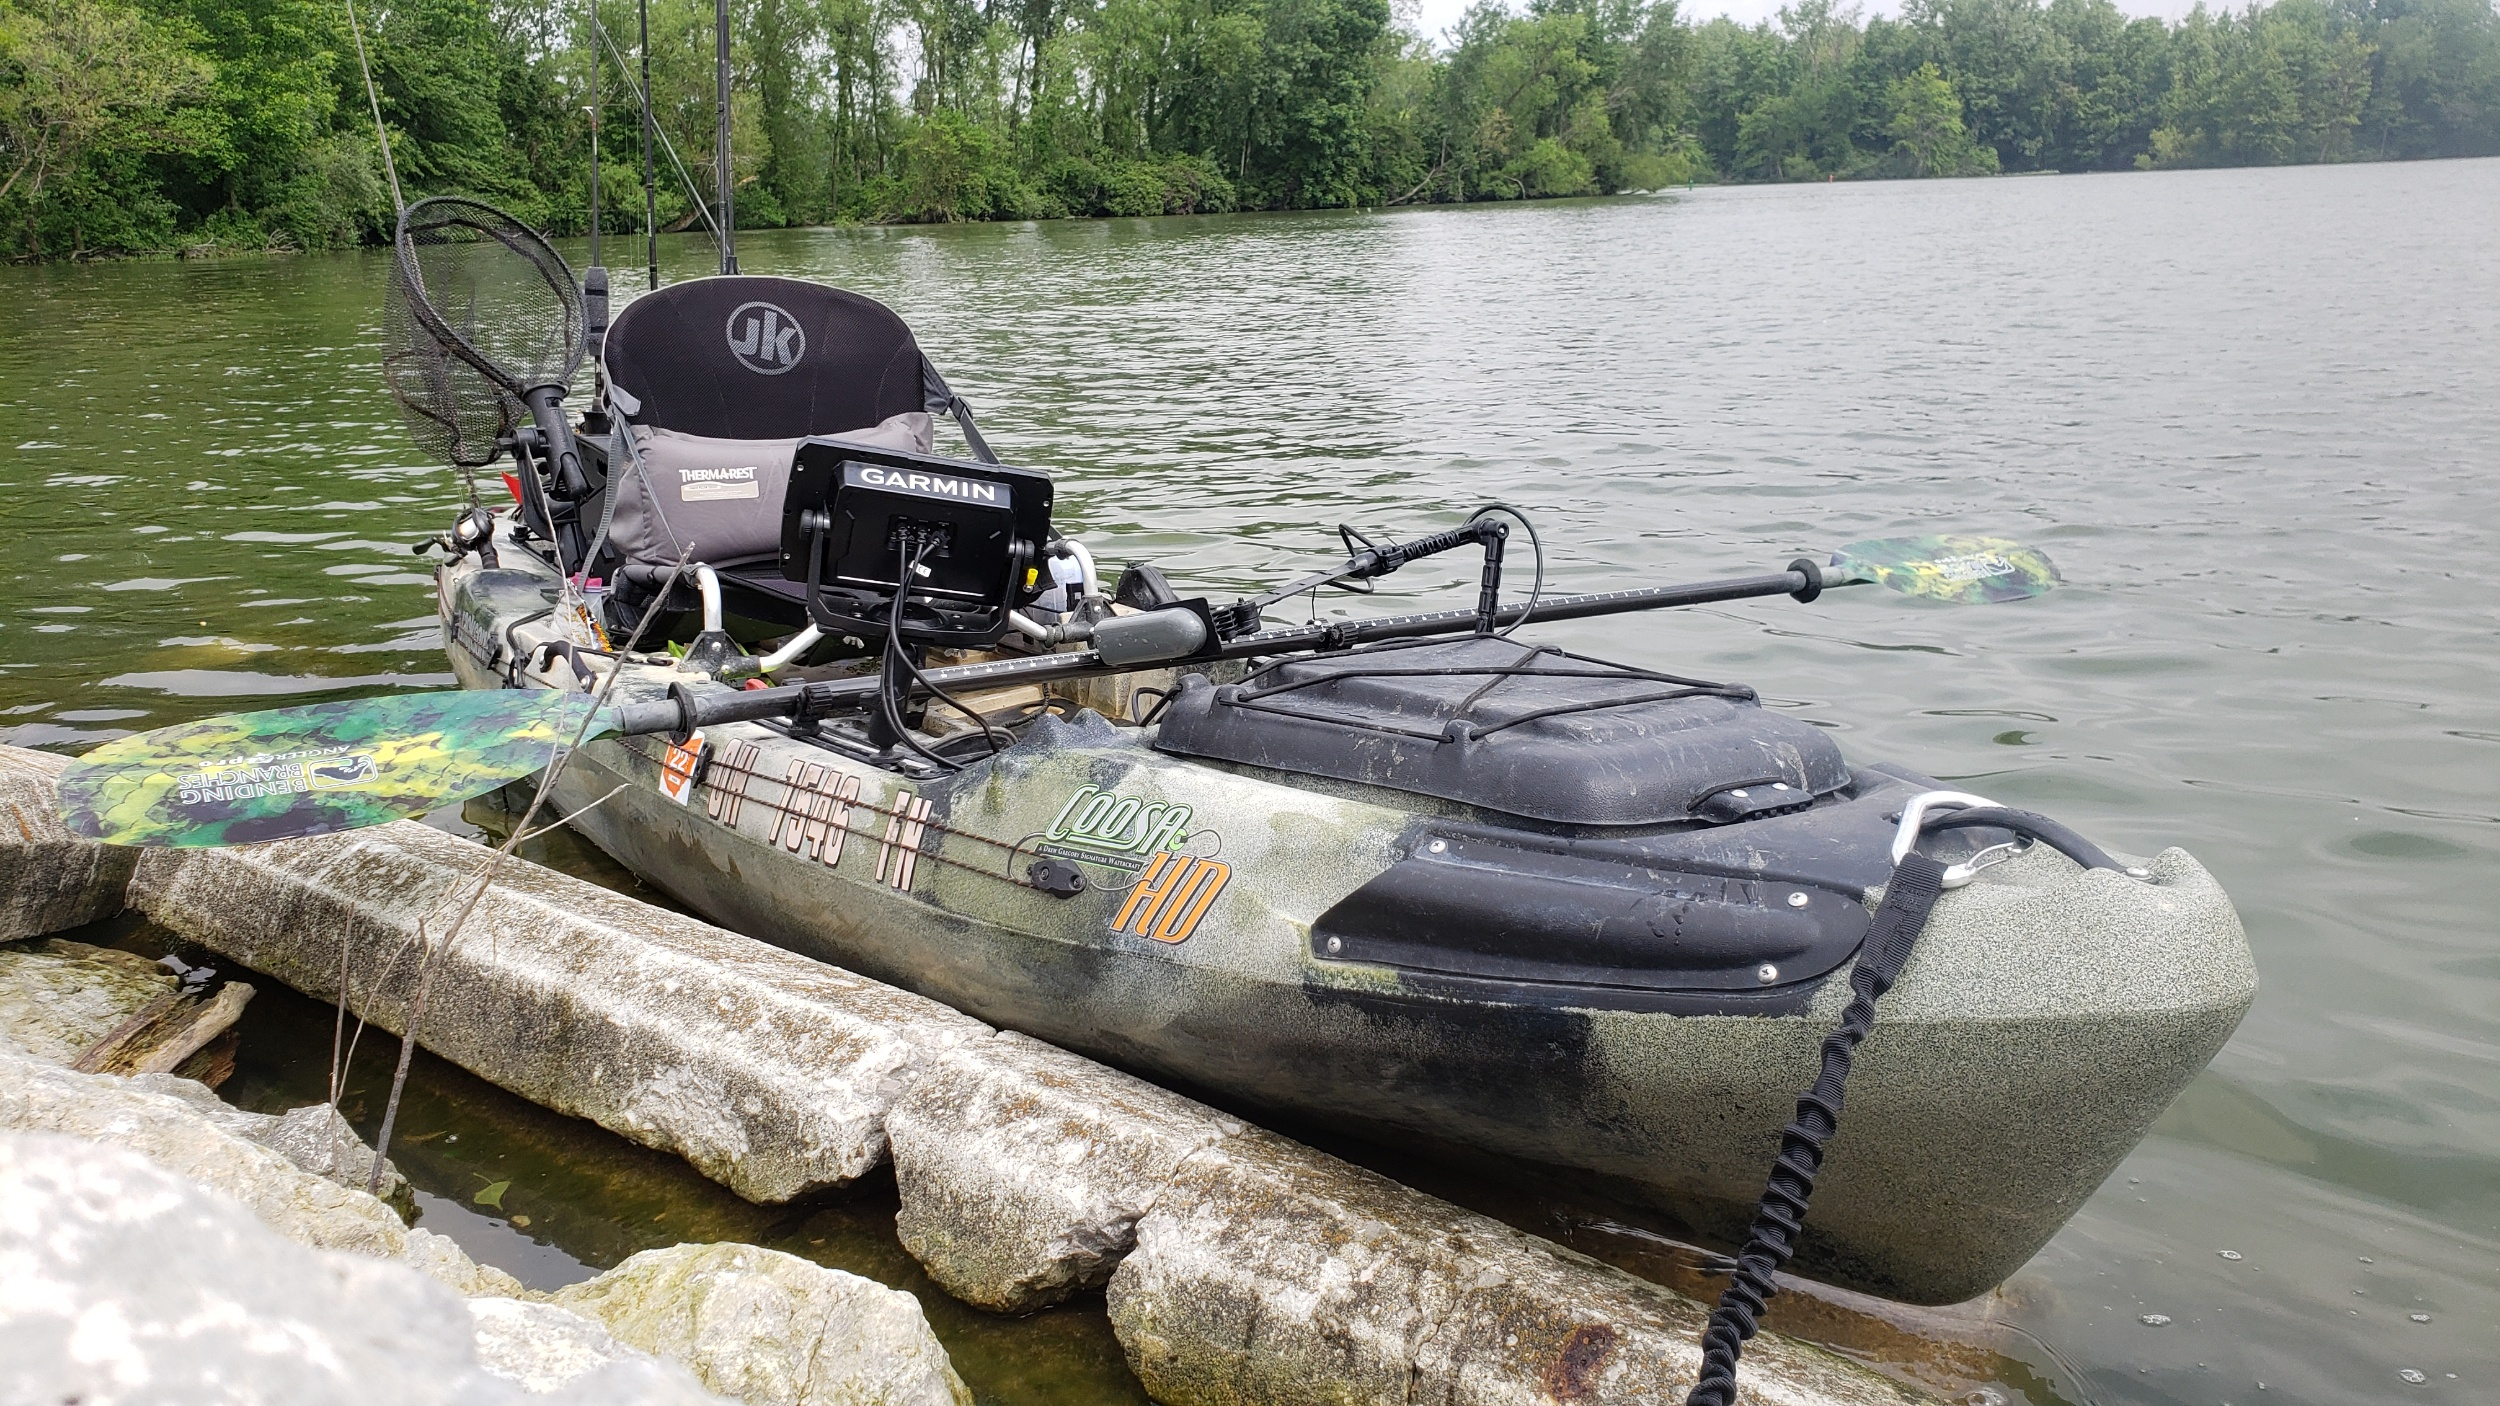 Josh's Gear    2015 Coosa HD  PFD: NRS Chinook  Paddle: Bending Branches Angler Pro  Anchor: Anchor Wizard paired with Yakattack HD anchor trolley  Sonar: Garmin Striker 7sv with Yakattack switchblade transducer arm powered by a Dakota lithium battery  Storage: Yakattack Black Pack with 3 Yakattack rod holders, Hawg Trough Bracket, cup holder and rod holder for net. Yakattack rotogrip paddle keepers  Rod and Reels: Lews reels paired with Fenwick rods  Transport: Malone Microsport with Jpro cradles. C-Tug for portage and short distance  Favorite lures: Keitech swim baits with belly weight ewg hooks